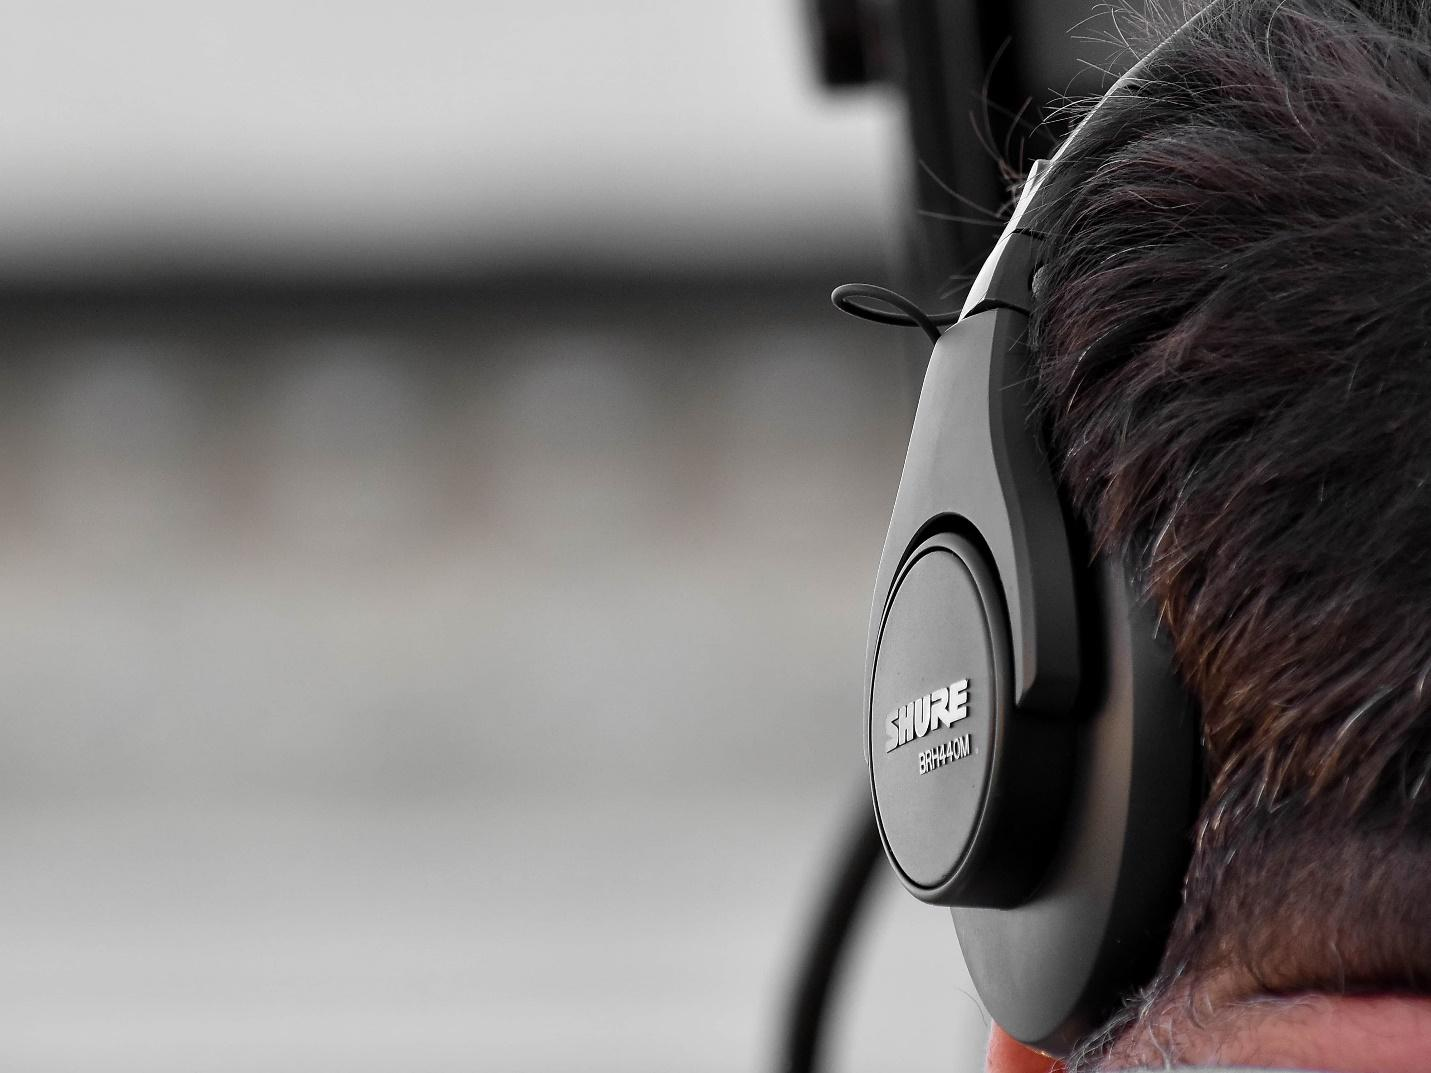 Free picture: audio, entertainment, headphones, headset, music, side view,  covering, technology, people, sound